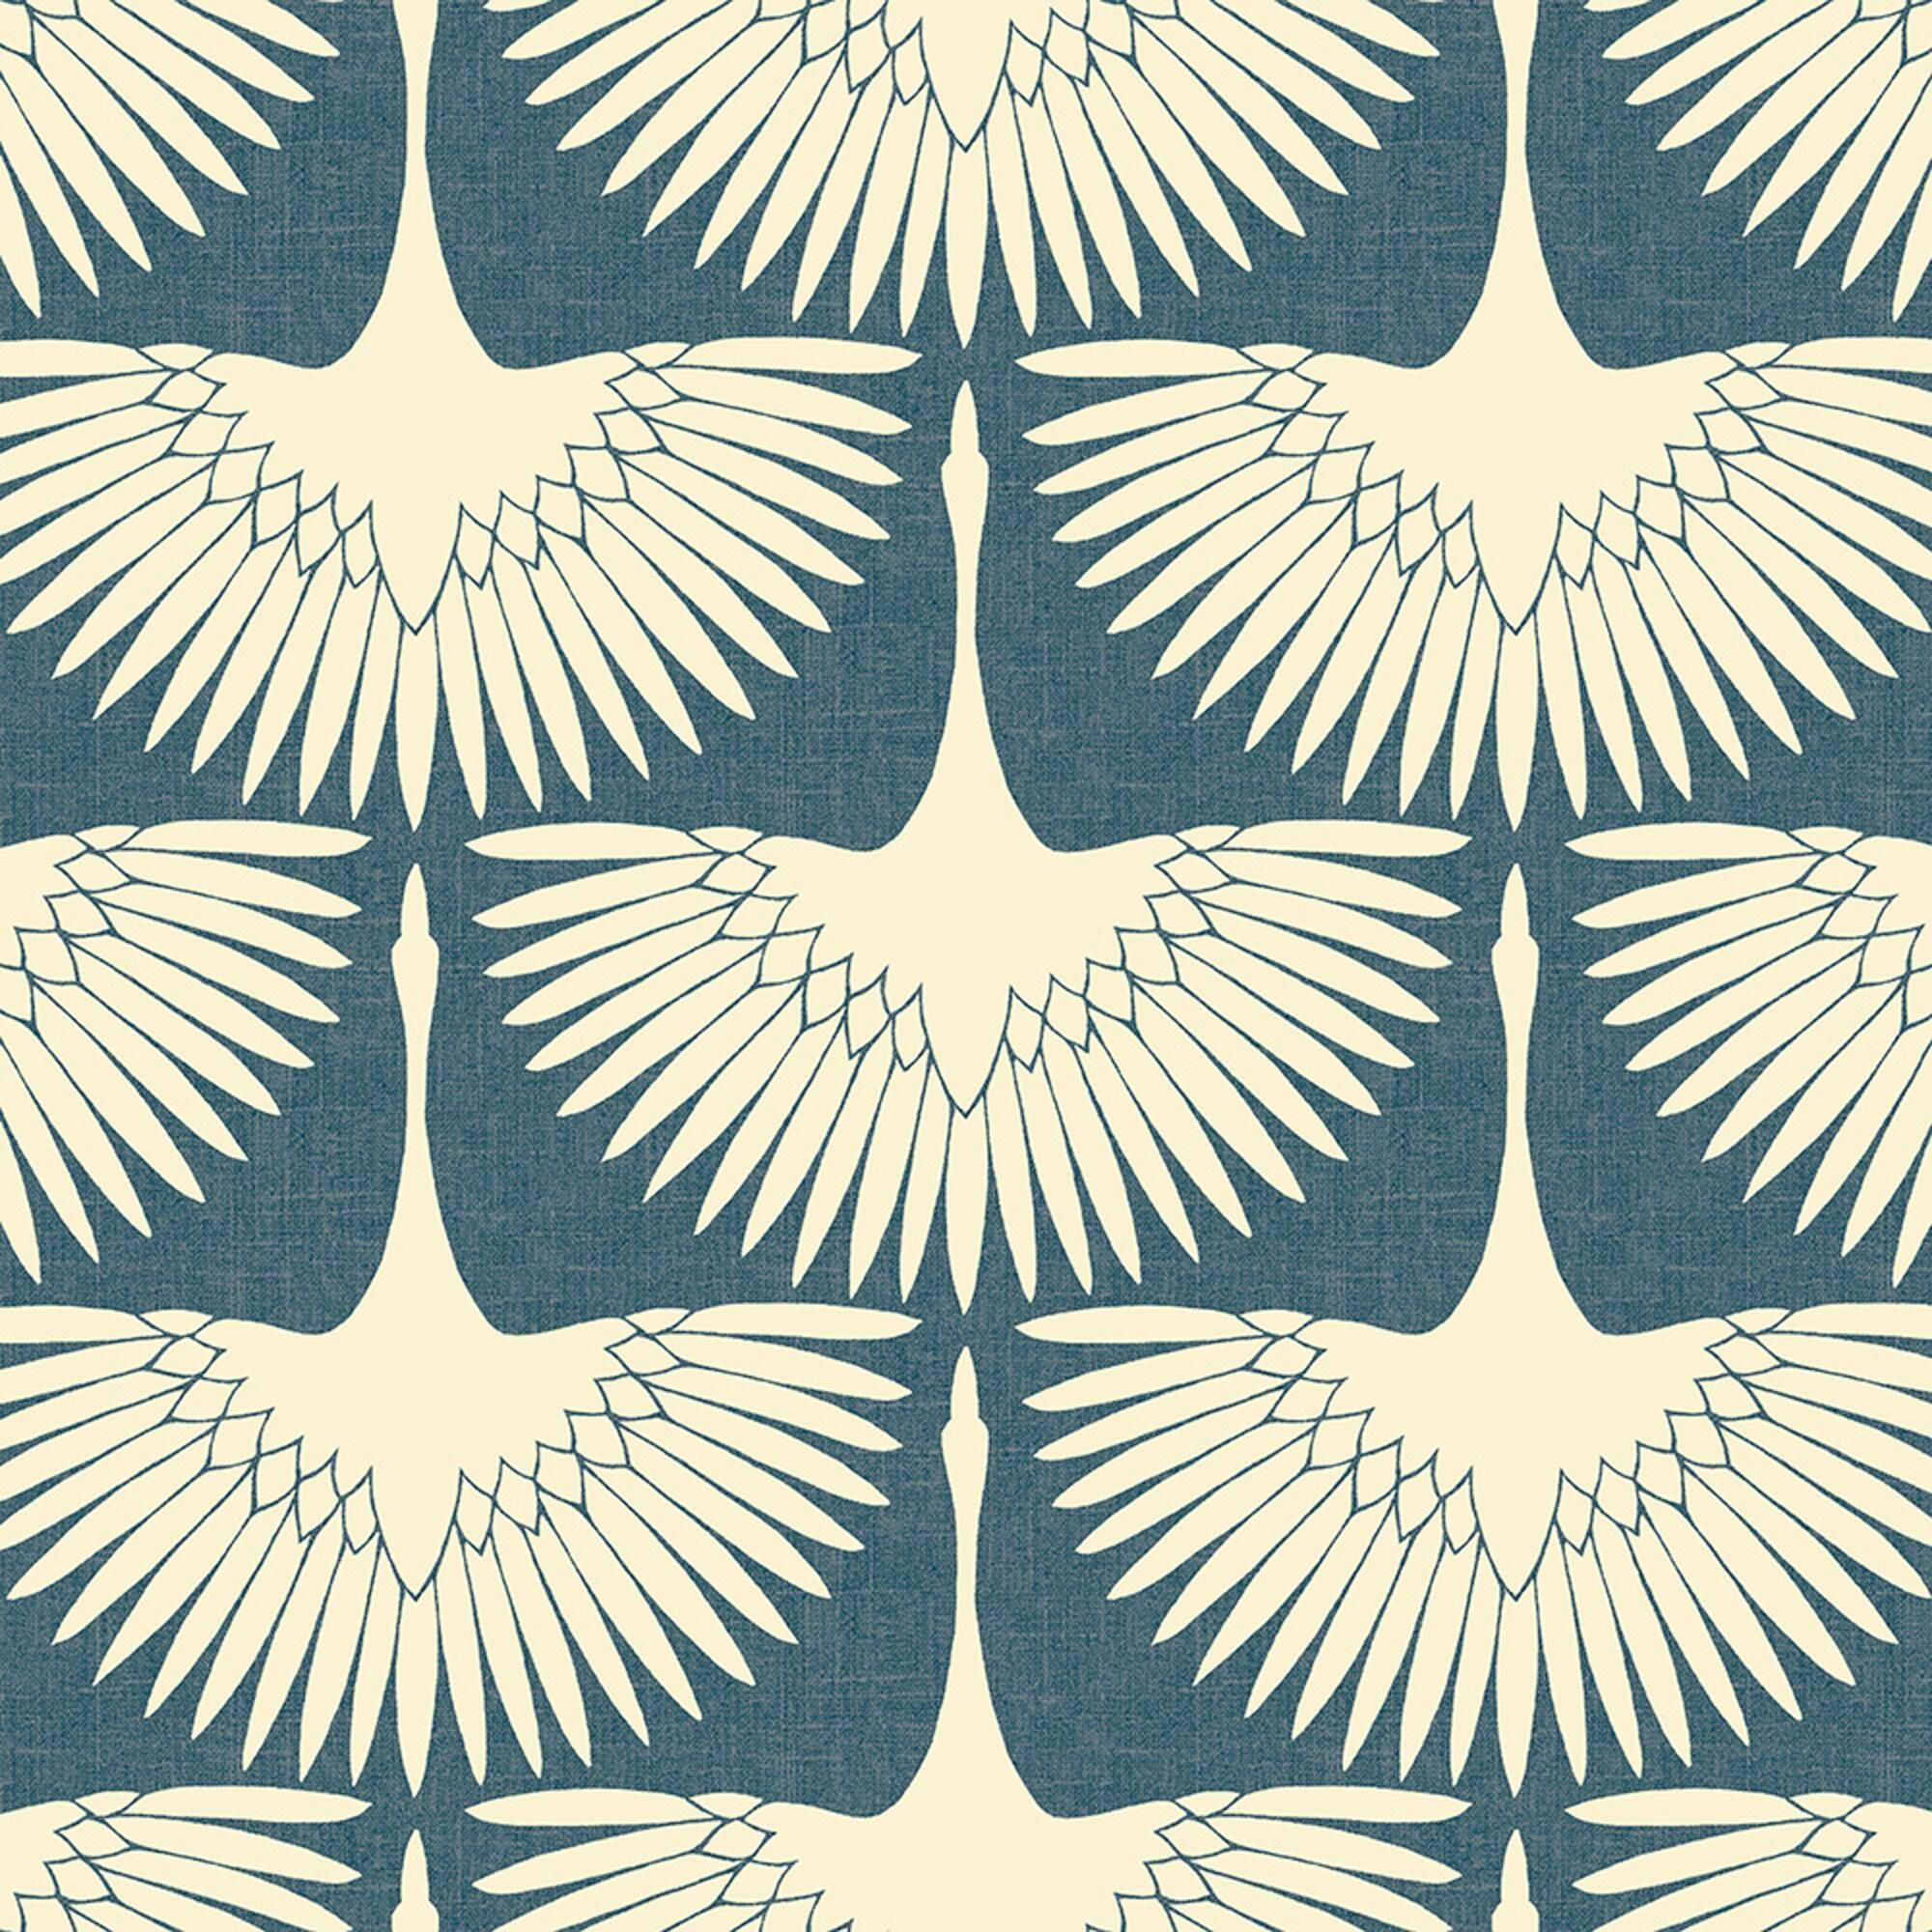 Blue And White Art Deco Cranes Peel And Stick Wallpaper By World Market Peel And Stick Wallpaper Removable Wallpaper Wallpaper